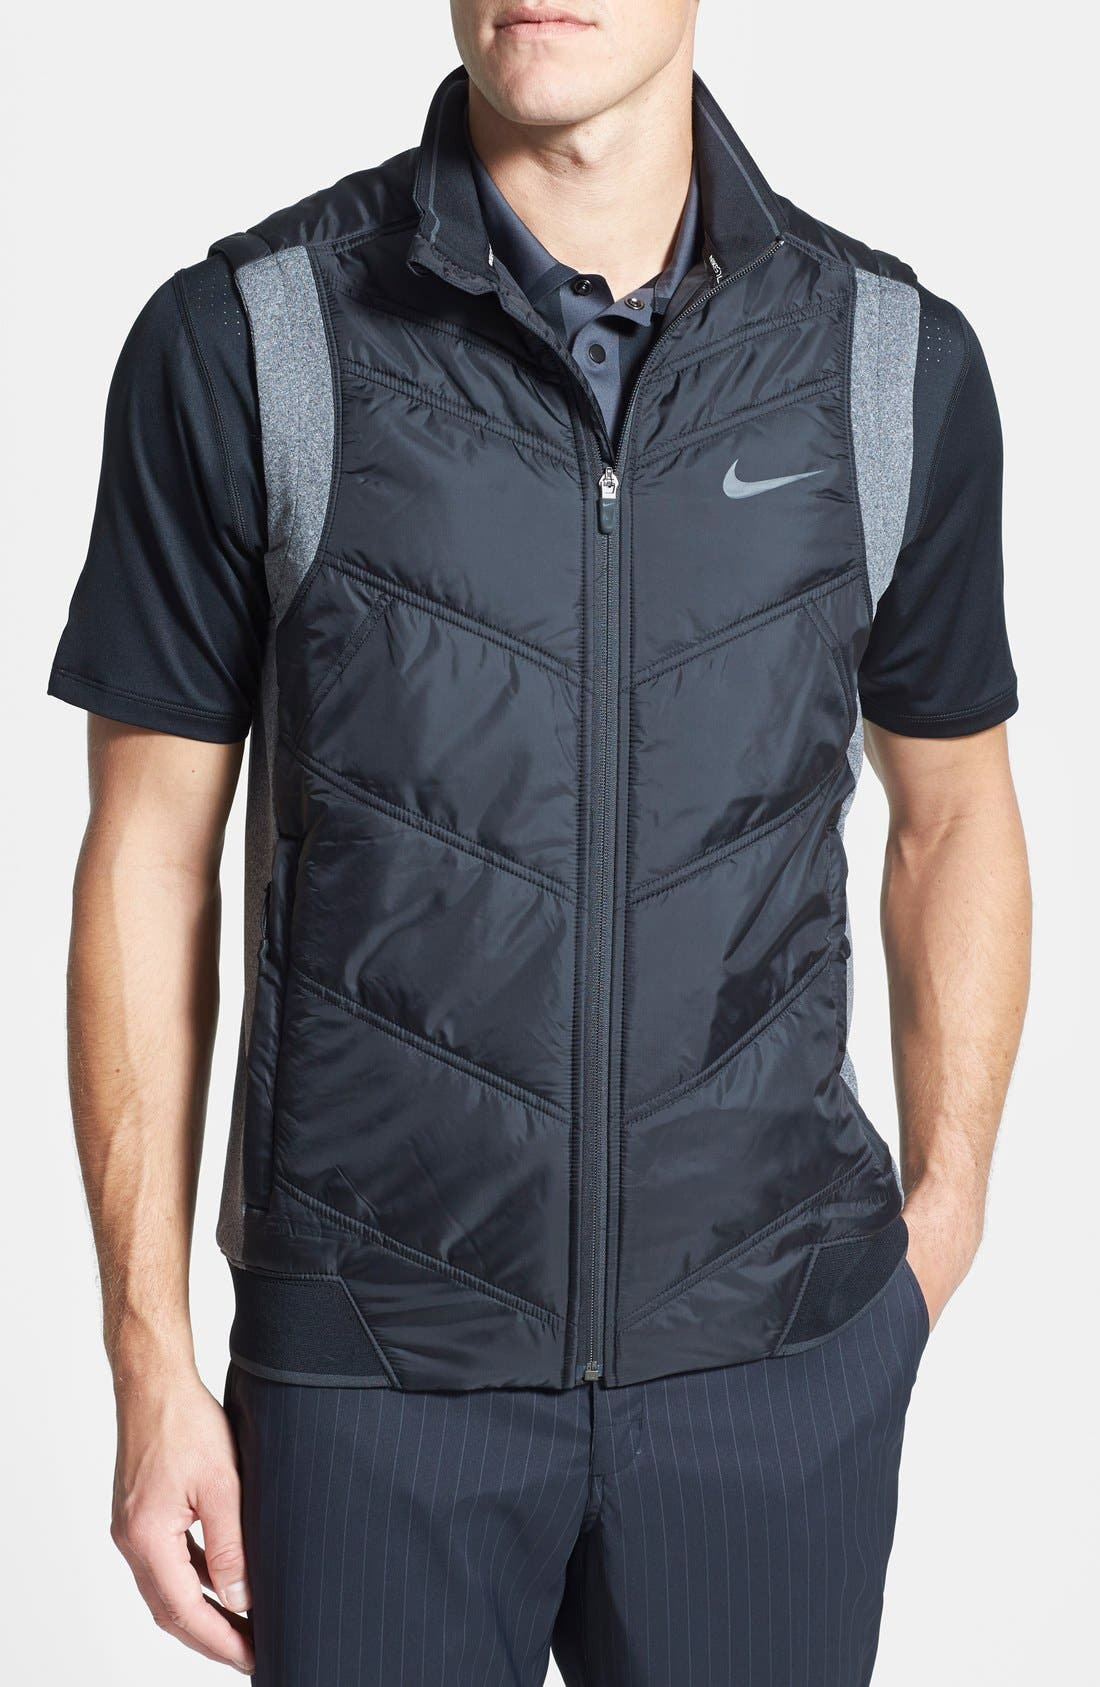 'Thermal Mapping' Wind & Water Resistant Dri-FIT Full Zip Vest,                             Main thumbnail 1, color,                             011